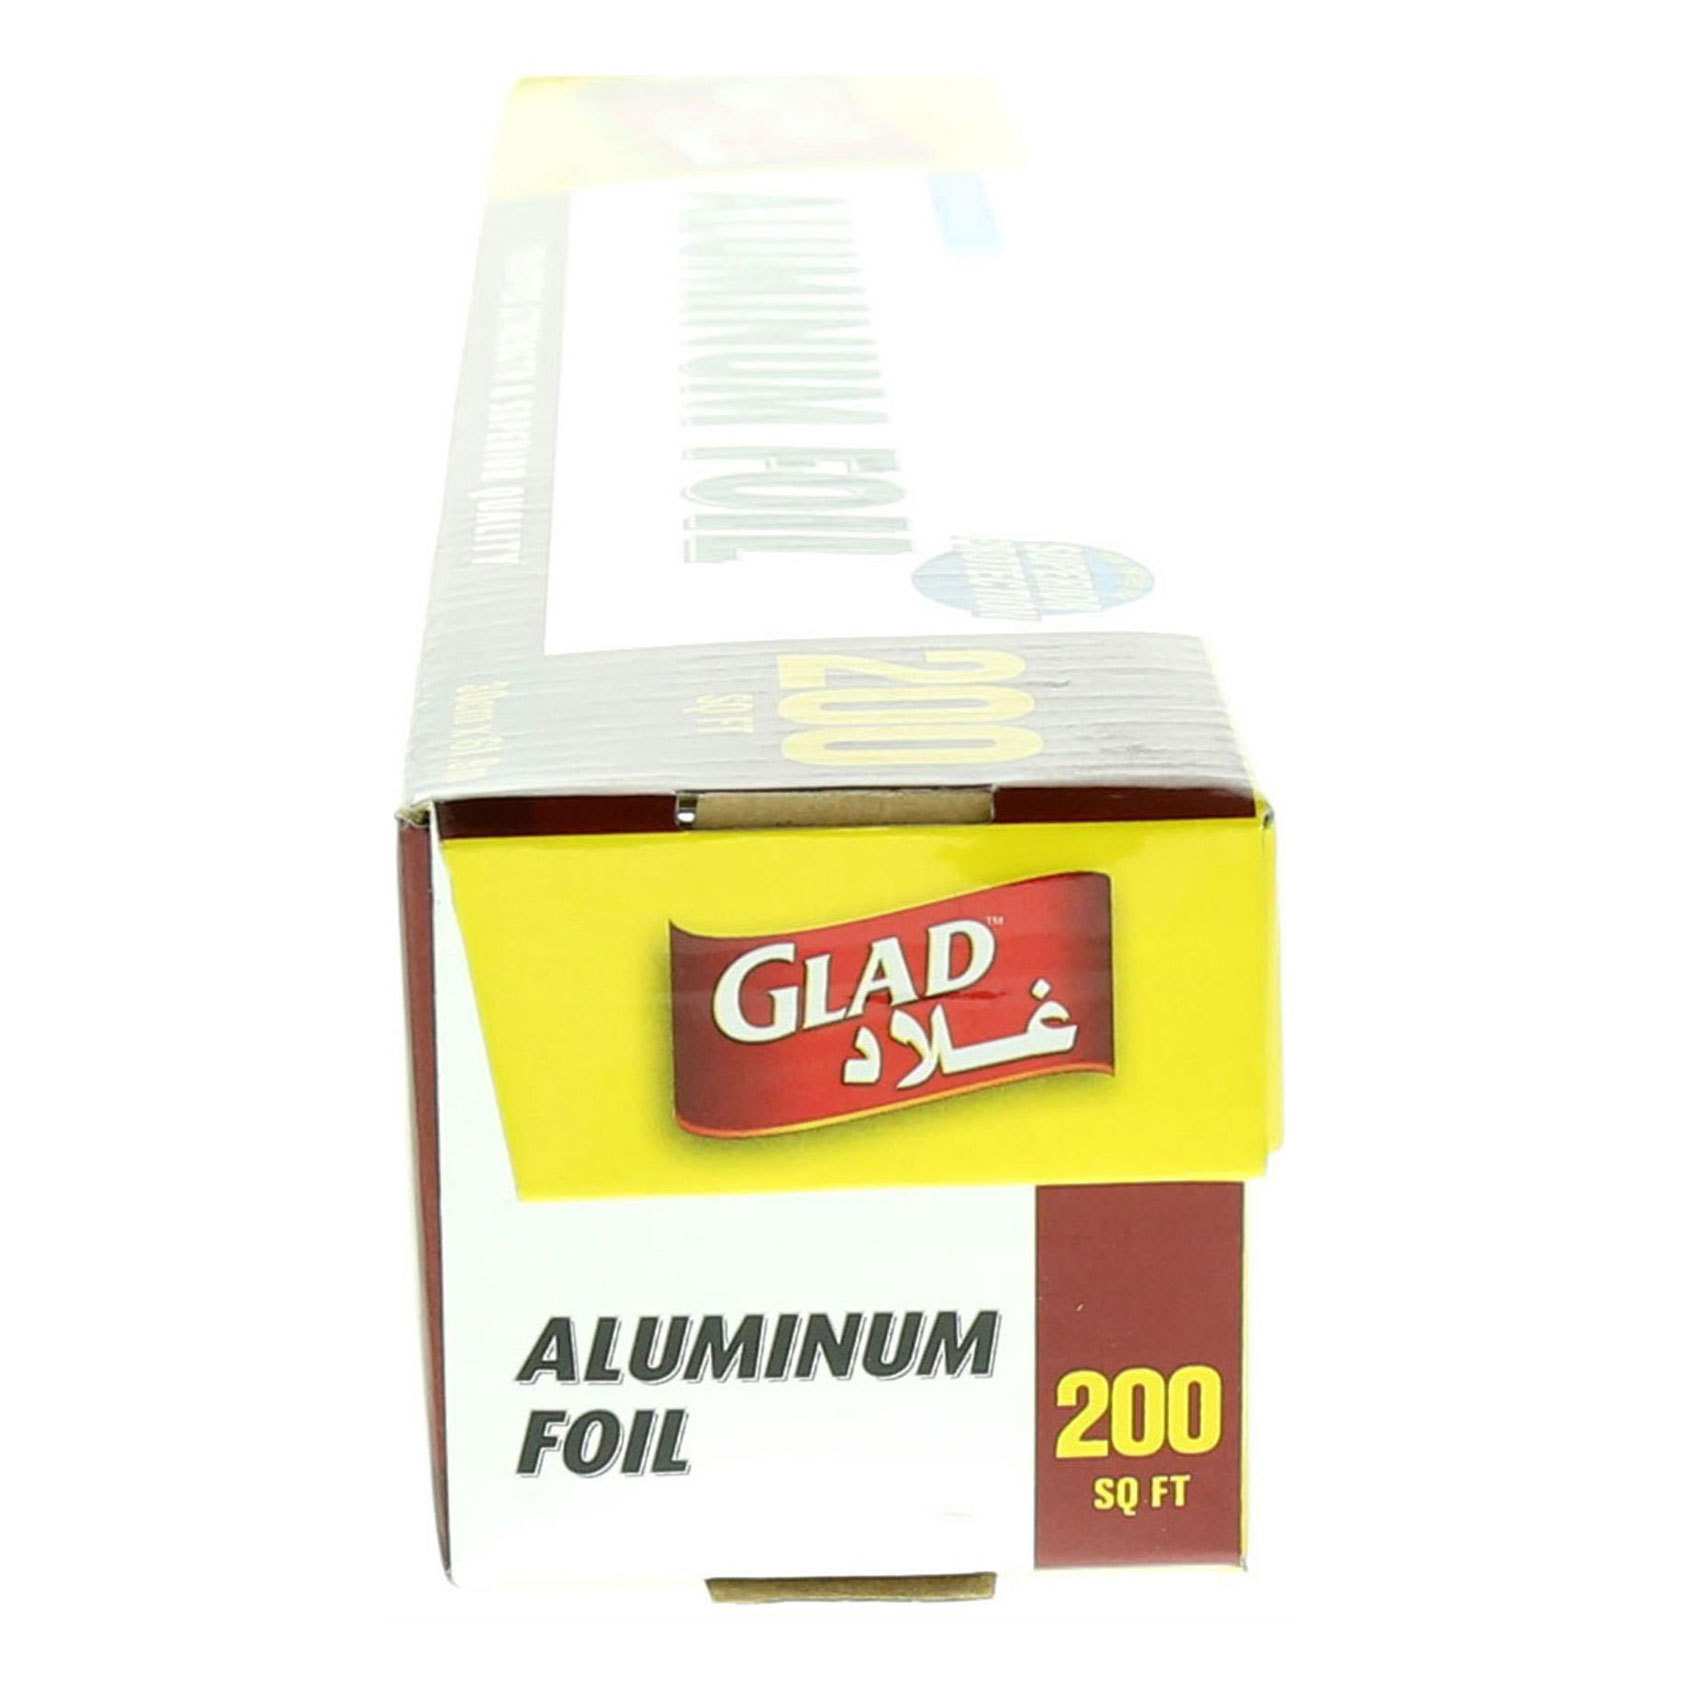 GLAD ALUMINUM FOIL 12 X 200 SQ FT